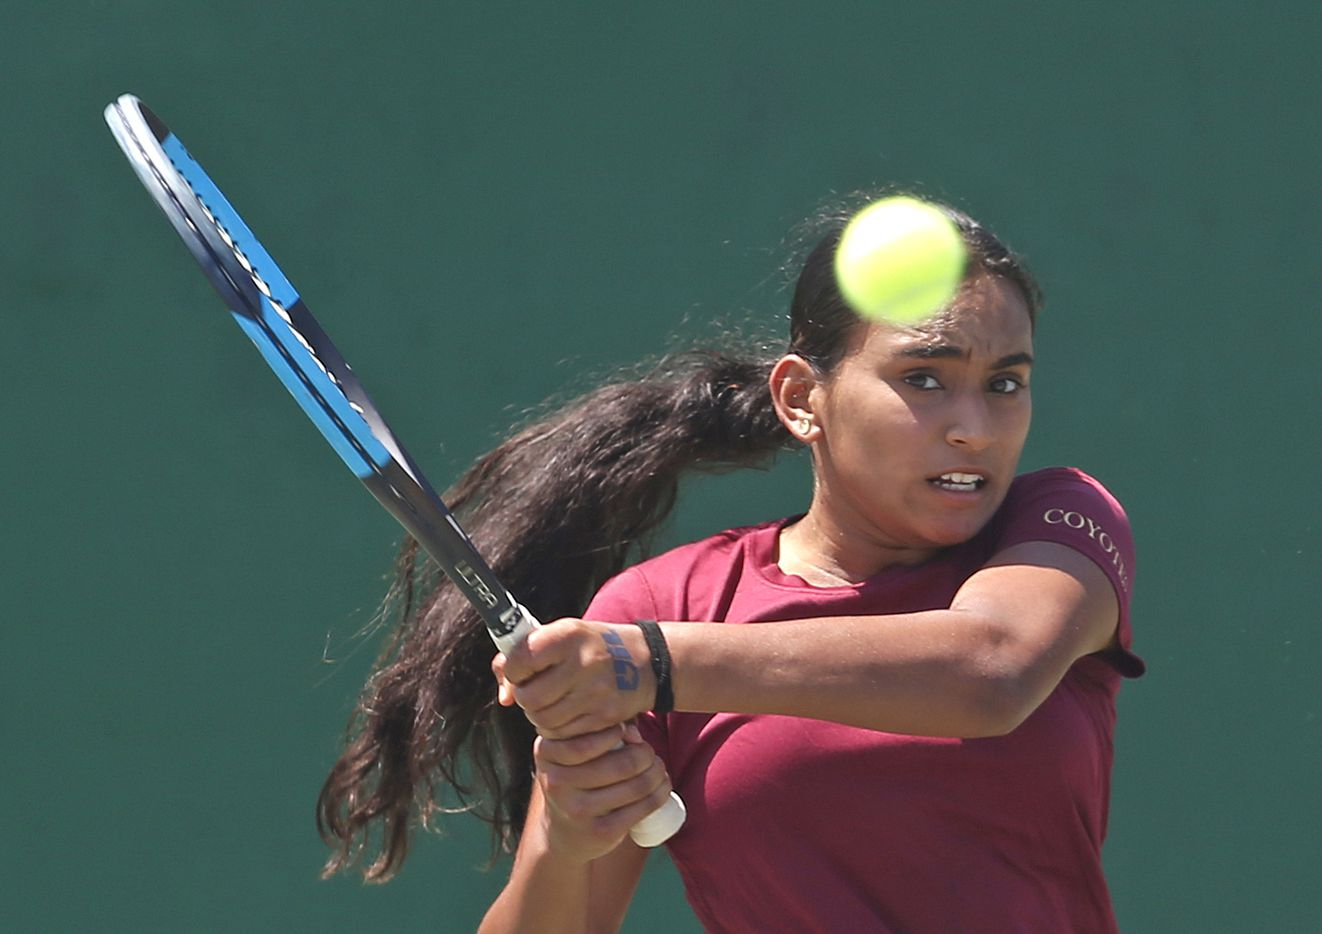 Sriya Leesha Gourammagari, of Frisco Heritage, returns a serve in a 5A girls singles match. UIL state tennis semifinals at Northside ISD Tennis Center on Thursday, May 20, 2021.